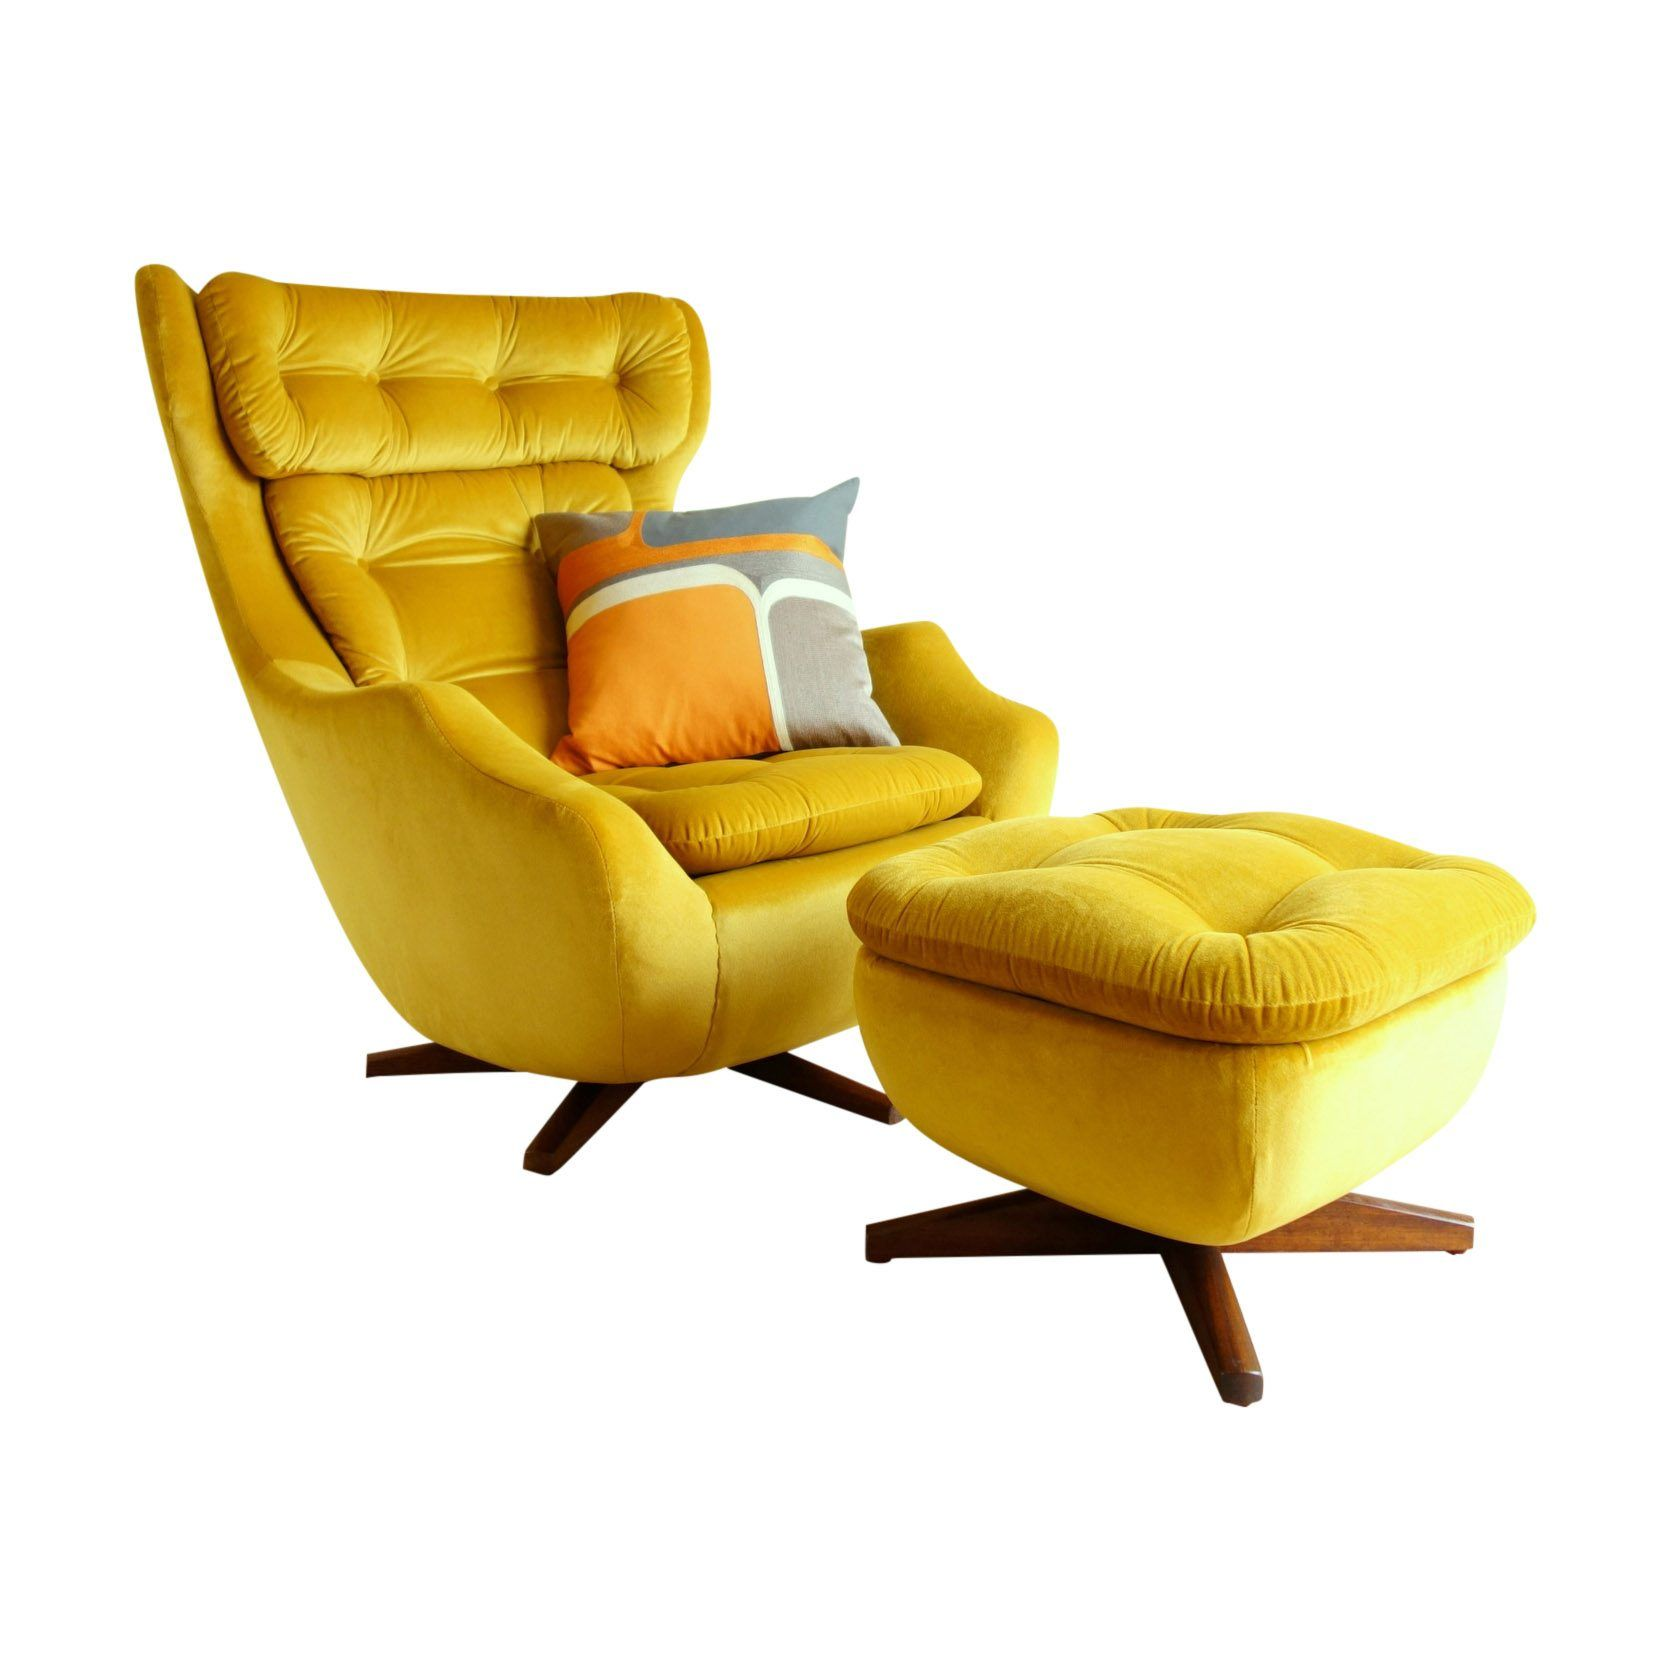 Parker Knoll Swivel Armchair With Footstool In Yellow Velvet Single Sofa Bed Furniture Living Room Decor Apartment